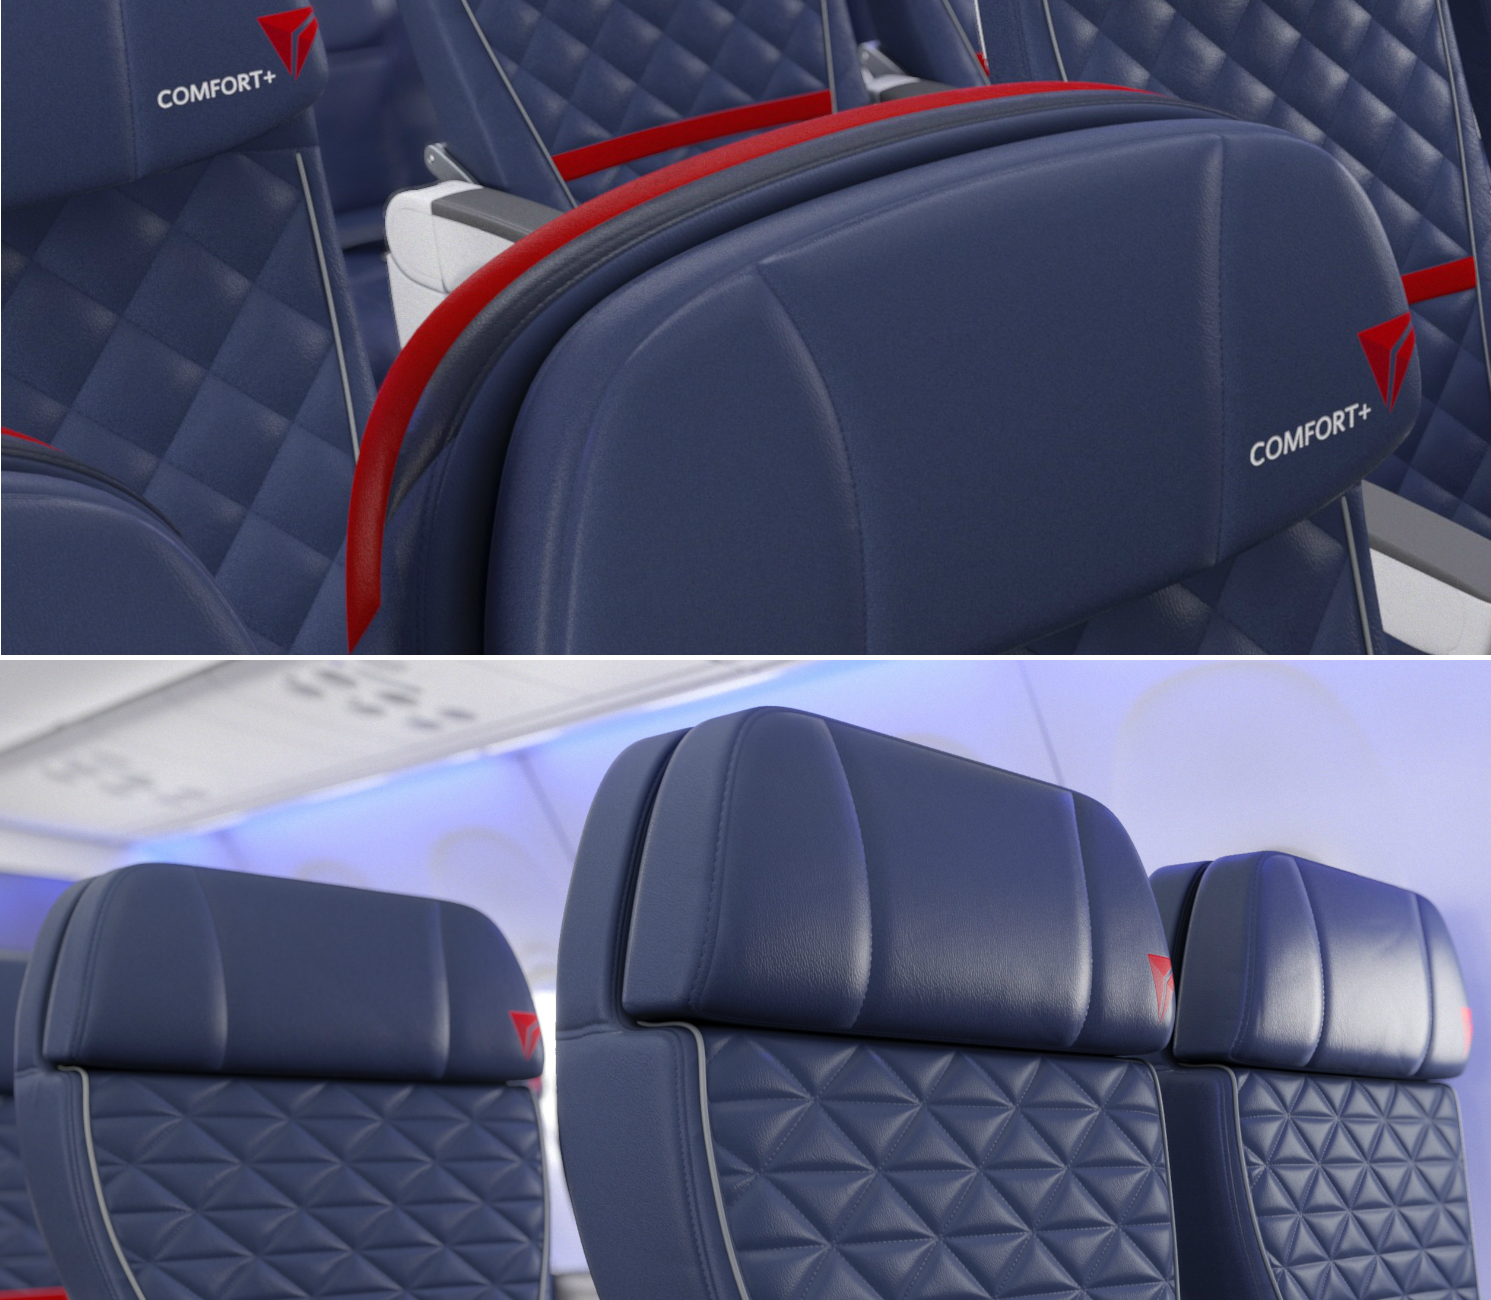 Op ed delta product rebrand leaves room for further for Delta main cabin vs delta comfort